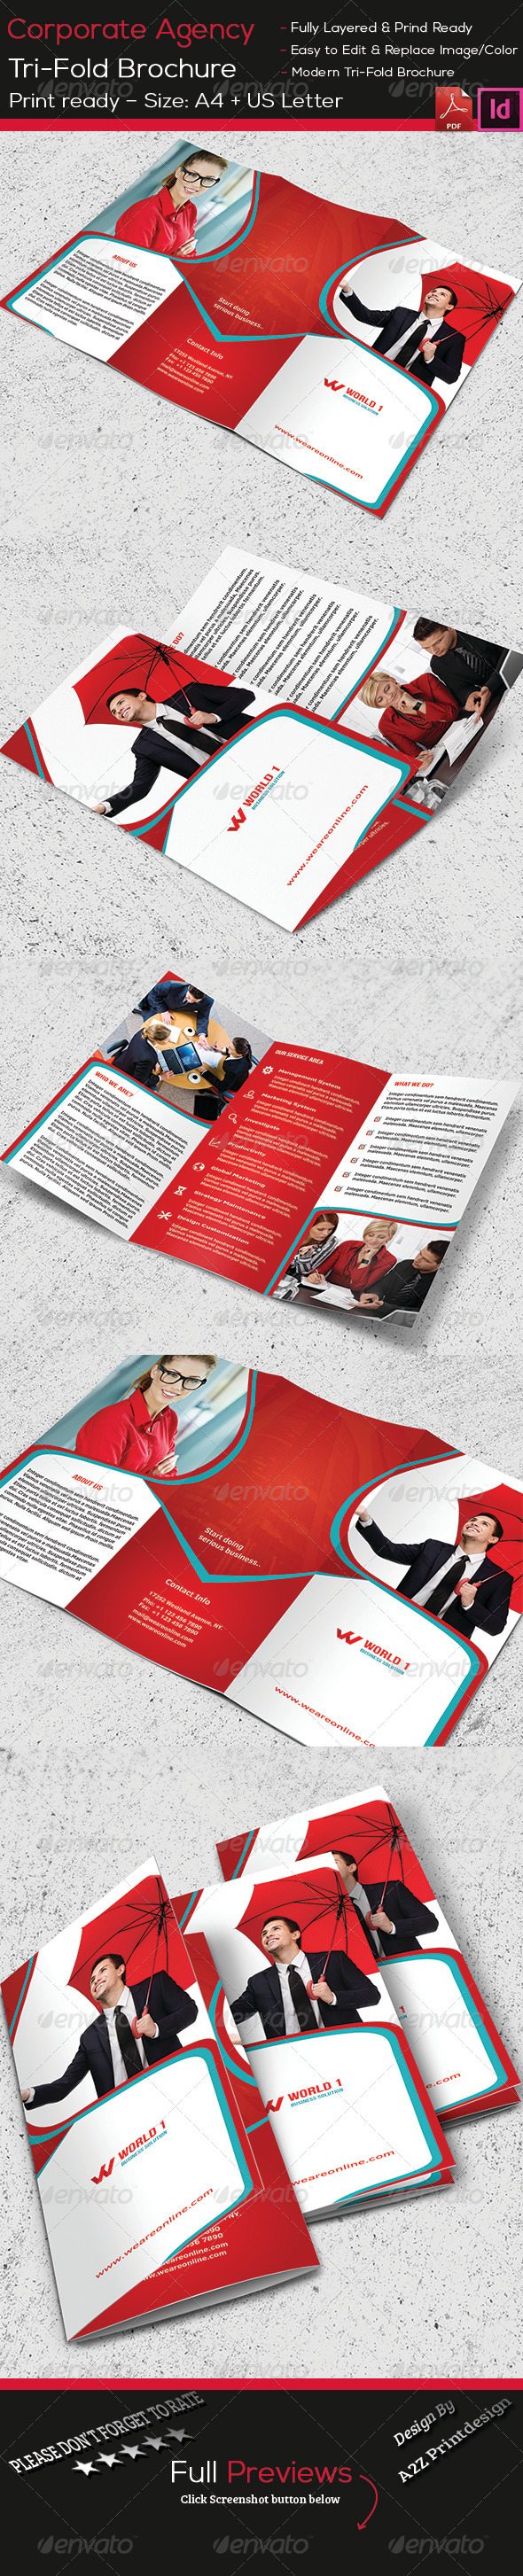 GraphicRiver Corporate Agency Brochure 8516270